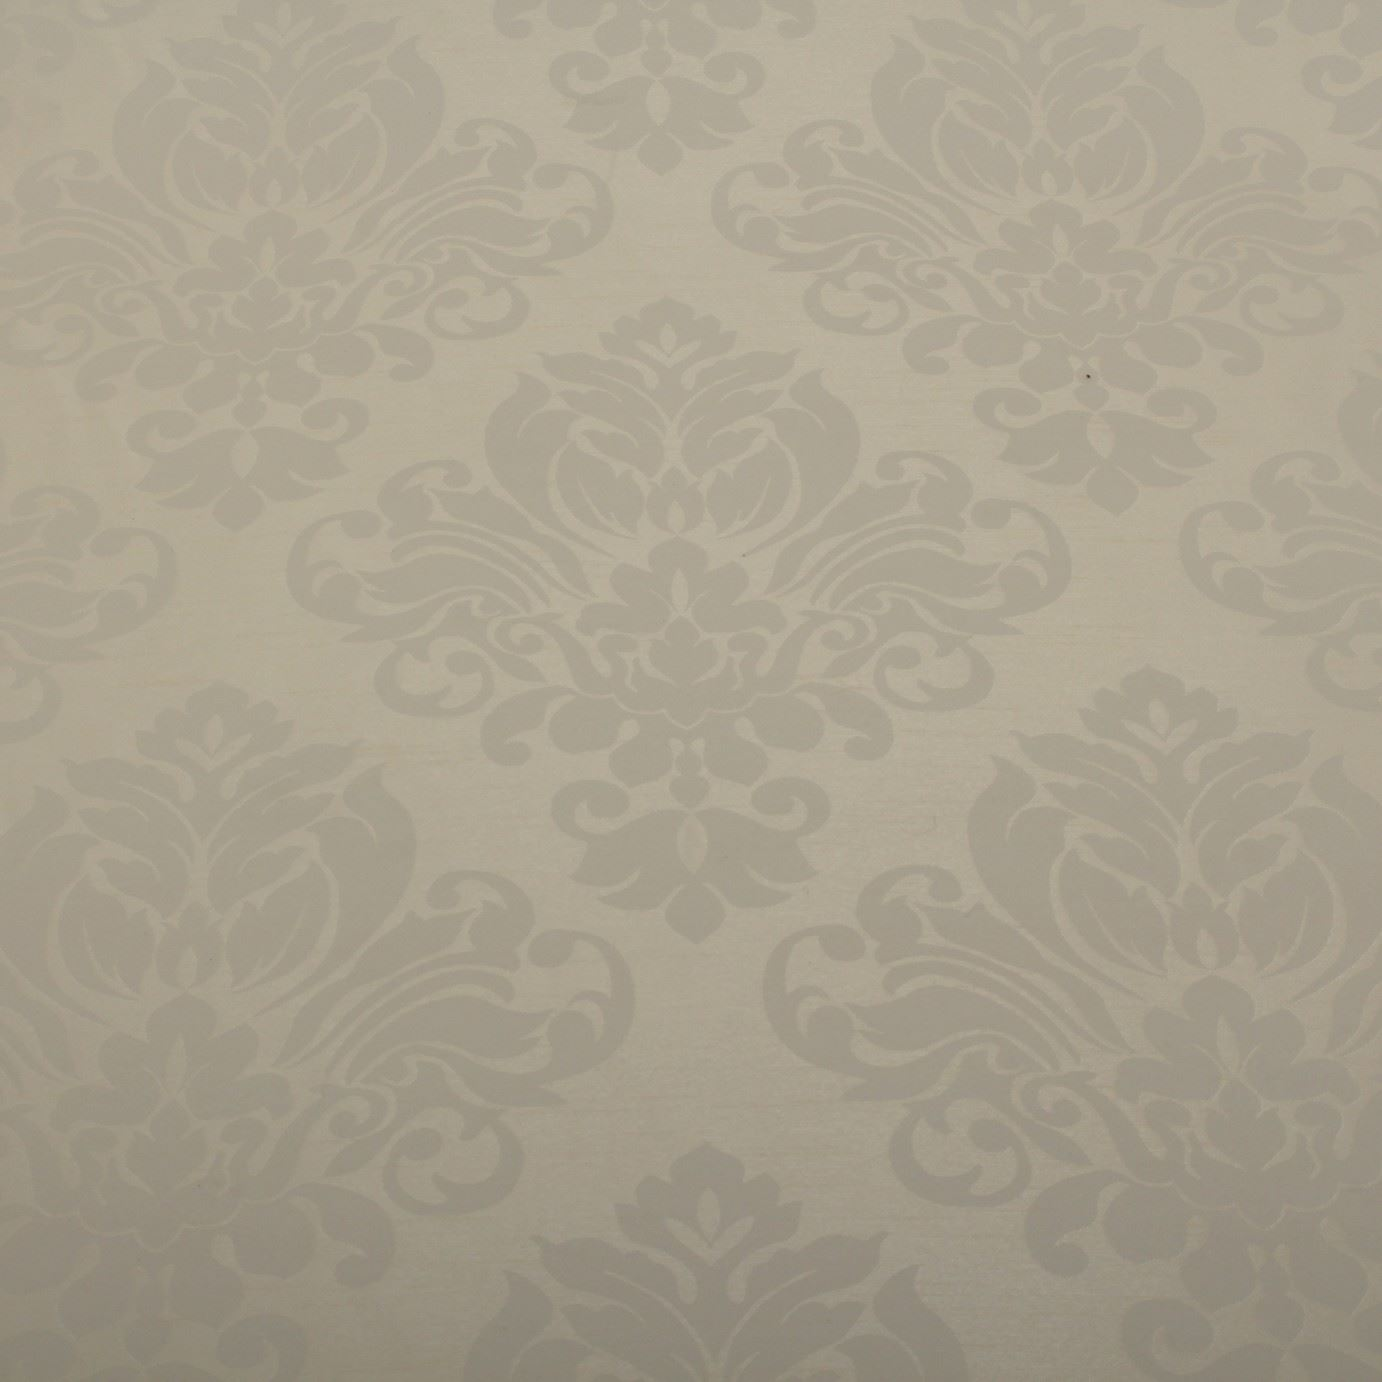 FLORAL-DAMASK-FAUX-SILK-JACQUARD-CURTAIN-UPHOLSTERY-FABRIC-MATERIAL-12-COLOURS thumbnail 20